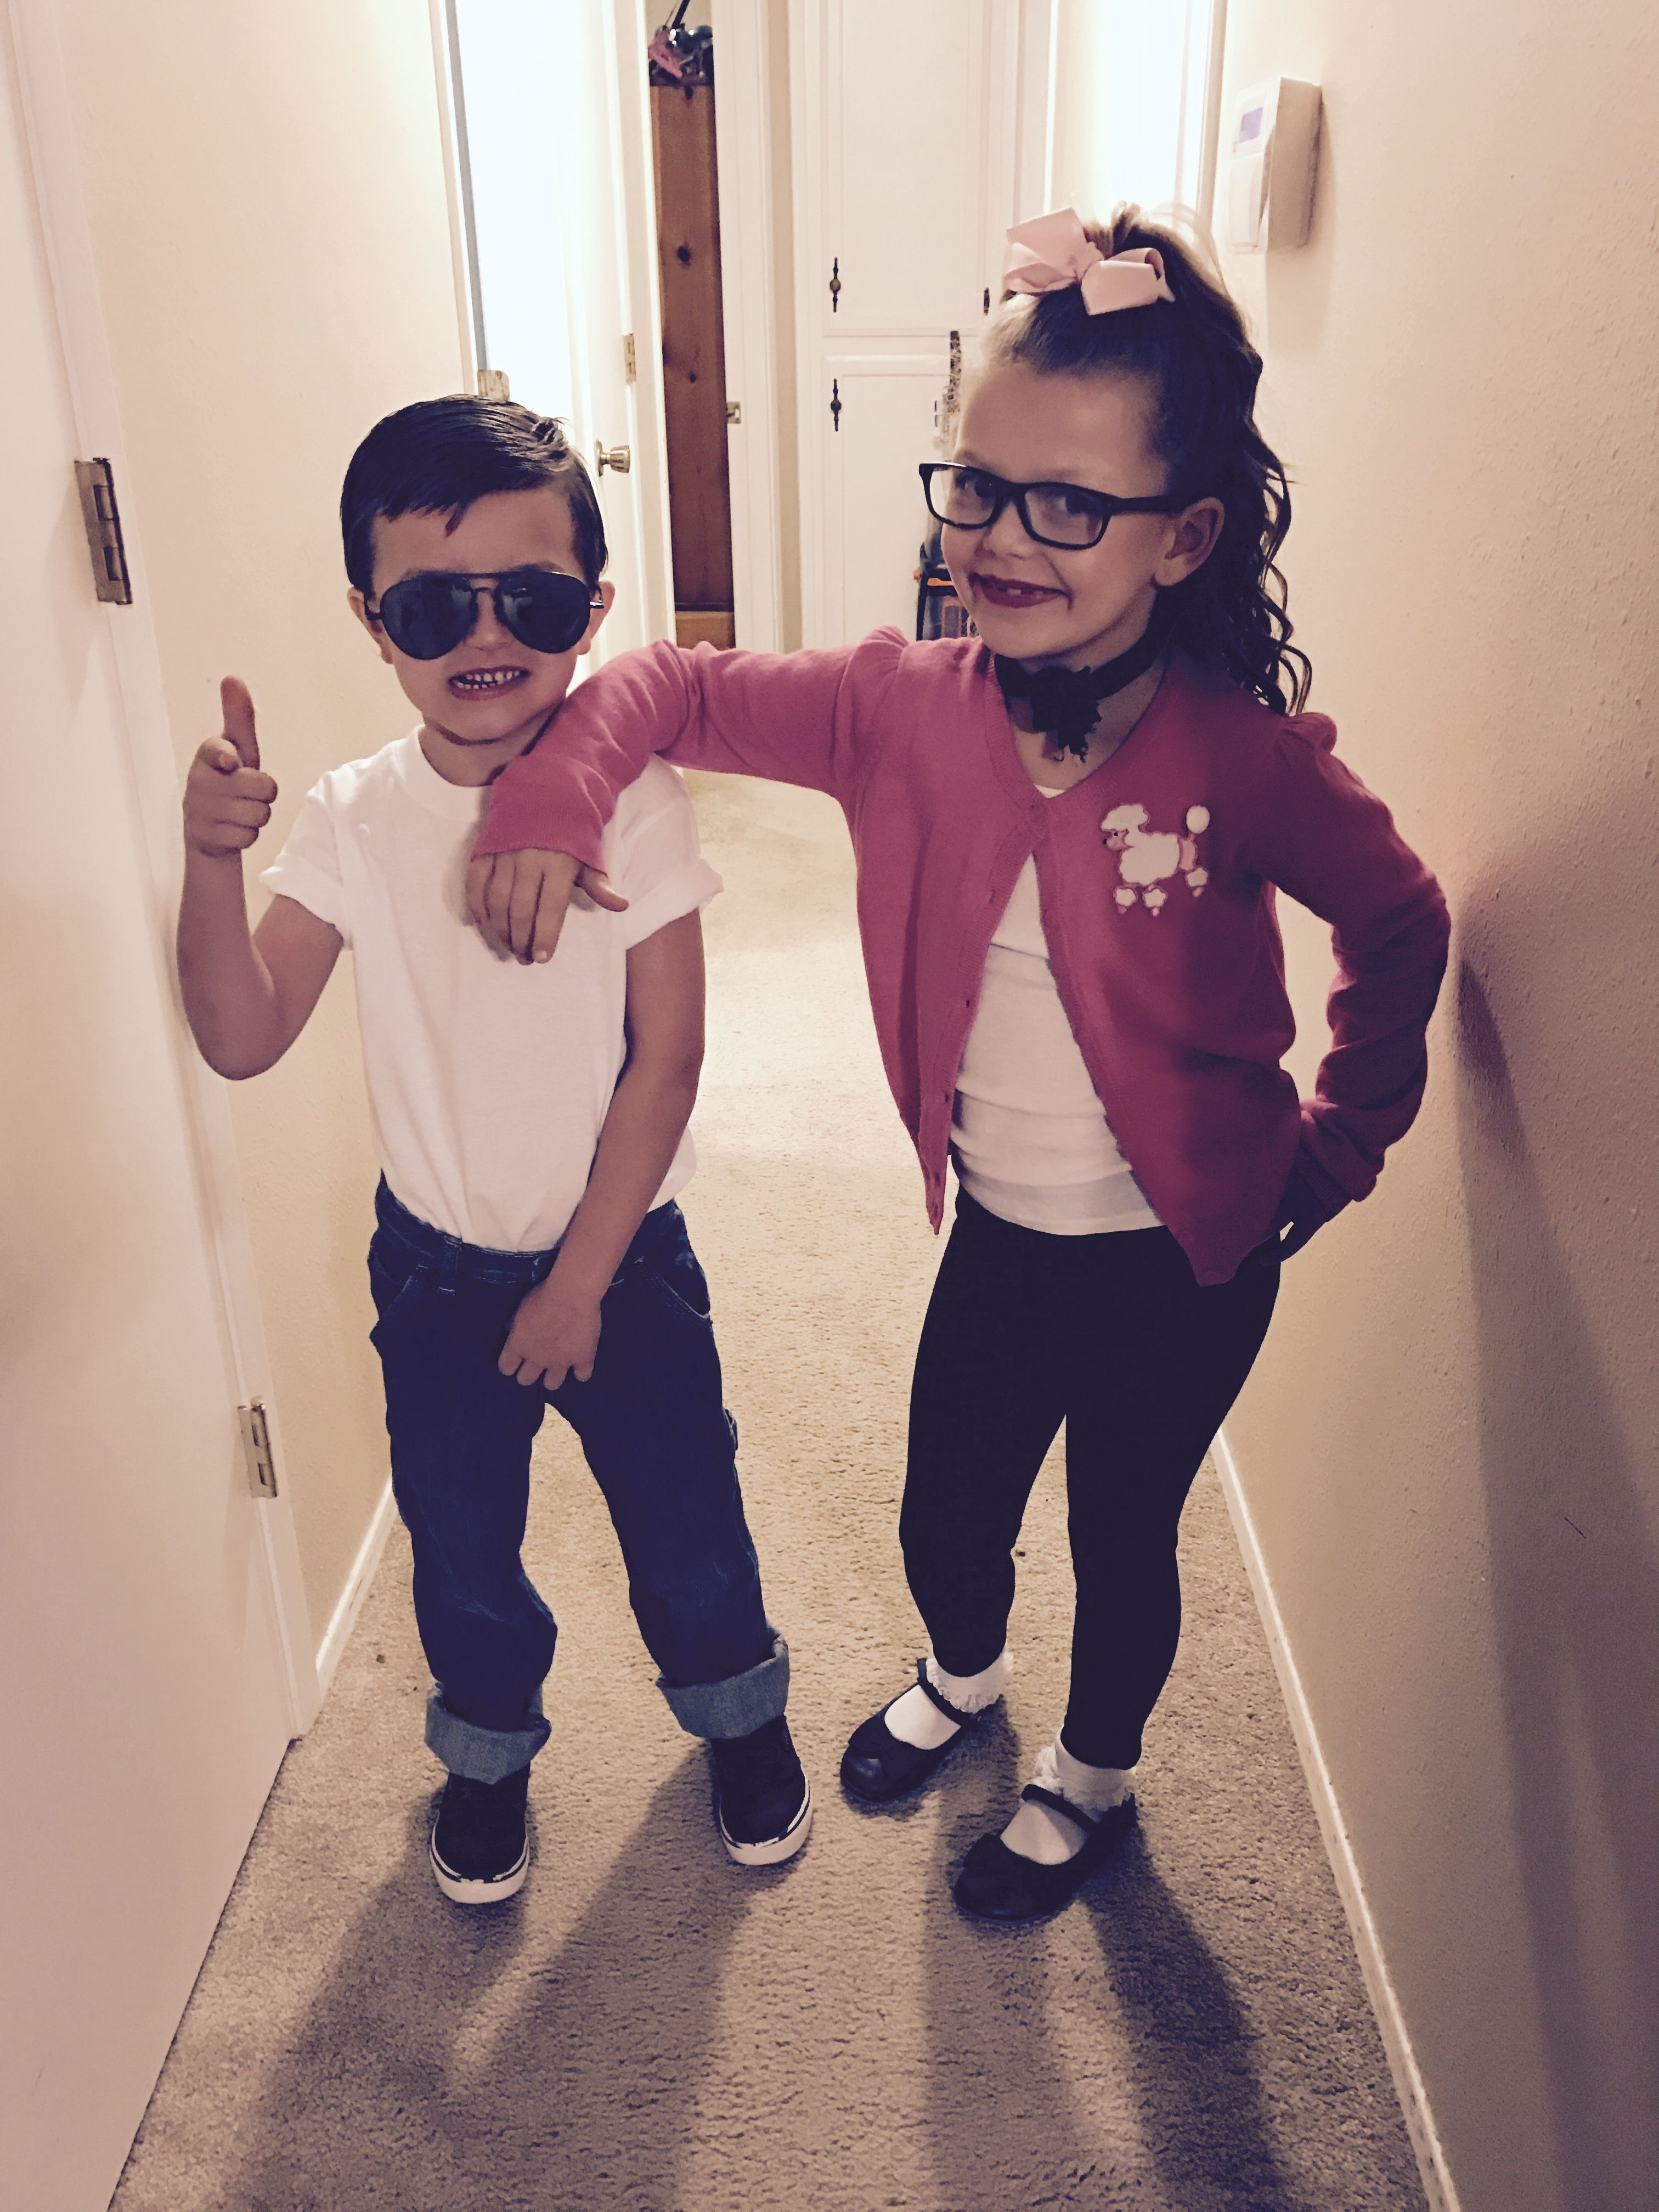 50's day at my kids school!! Love this easy outfit idea for them! Especially last minute!! #decadesdayspiritweek